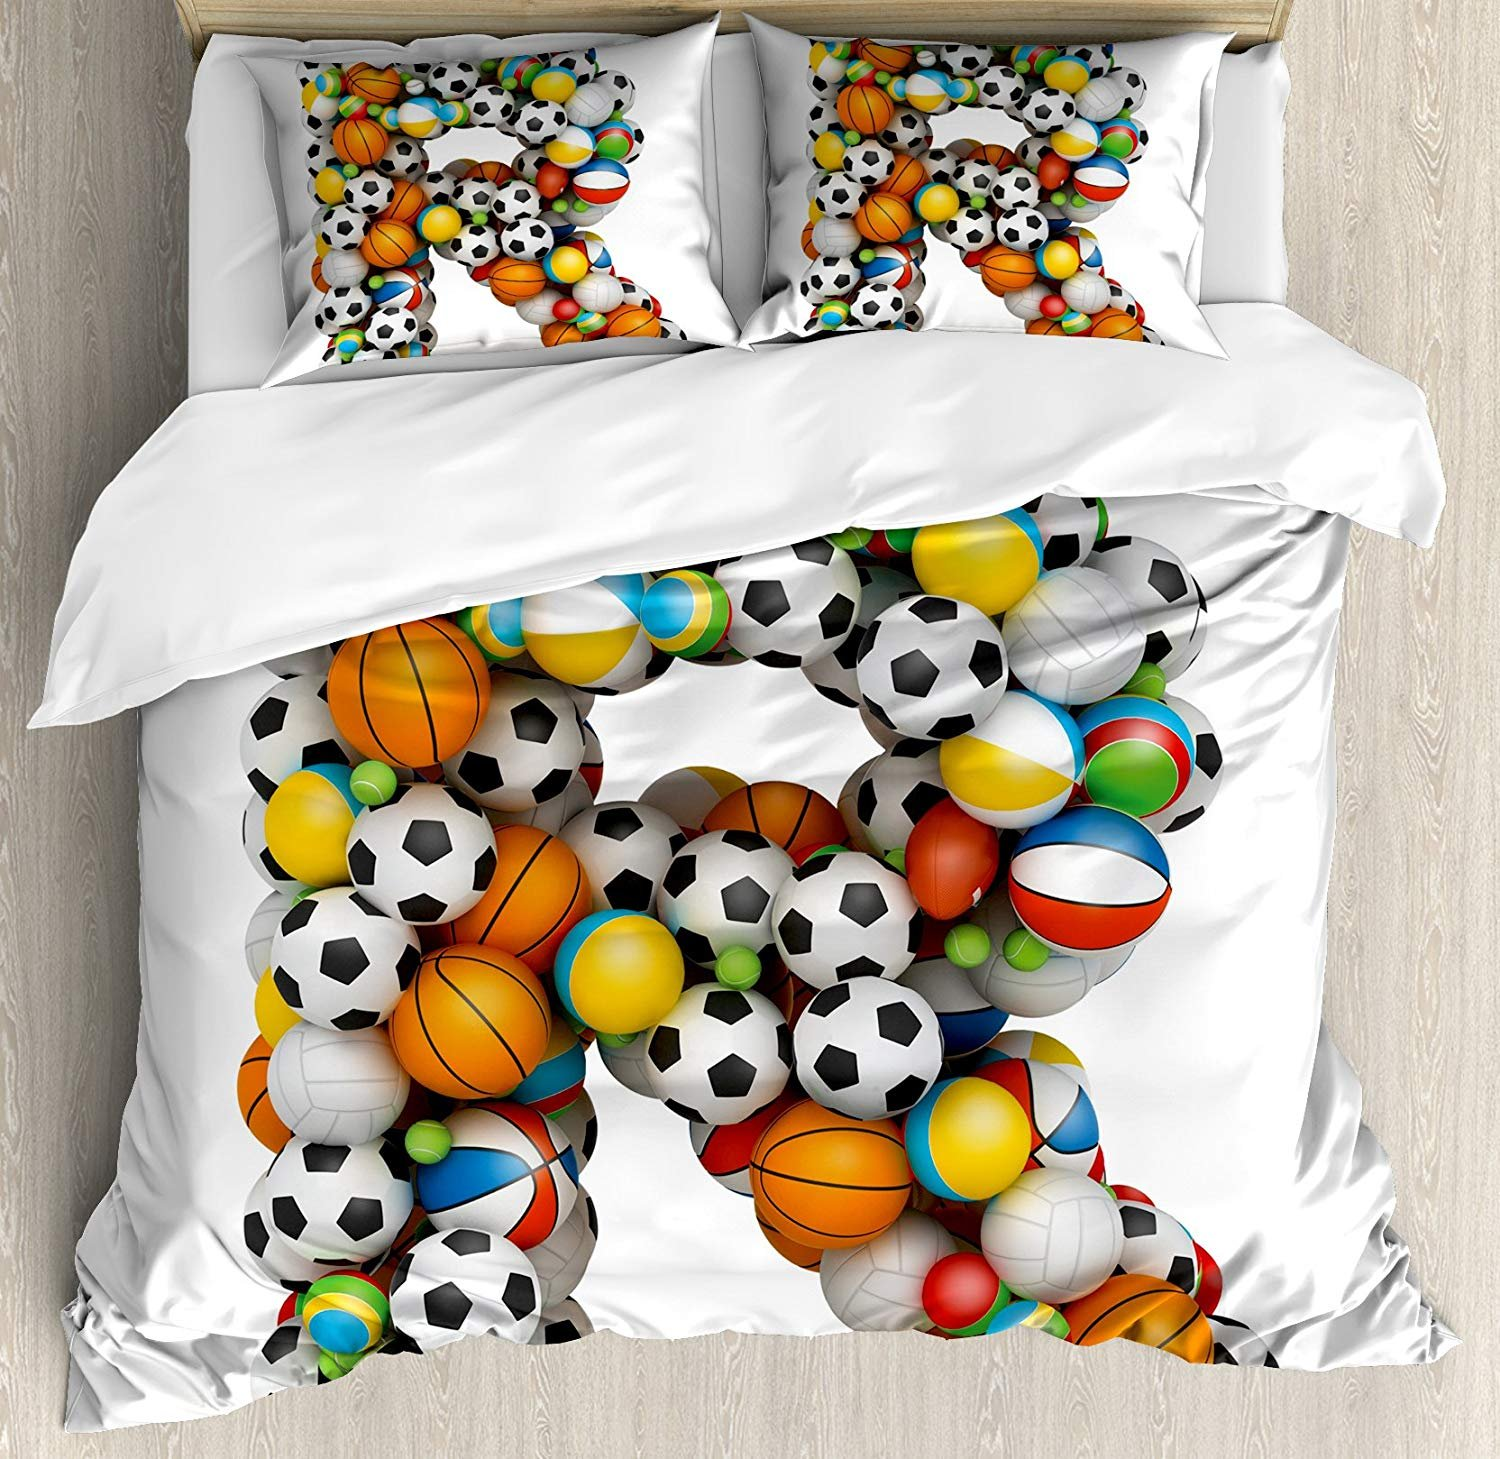 Duvet Cover Set Letter R Realistic Looking Volleyball Basketball Soccer Balls Language of the Game Theme Ultra Soft Durable Twill Plush 4 Pcs Bedding Sets for Childrens/Kids/Teens/Adults Twin Size